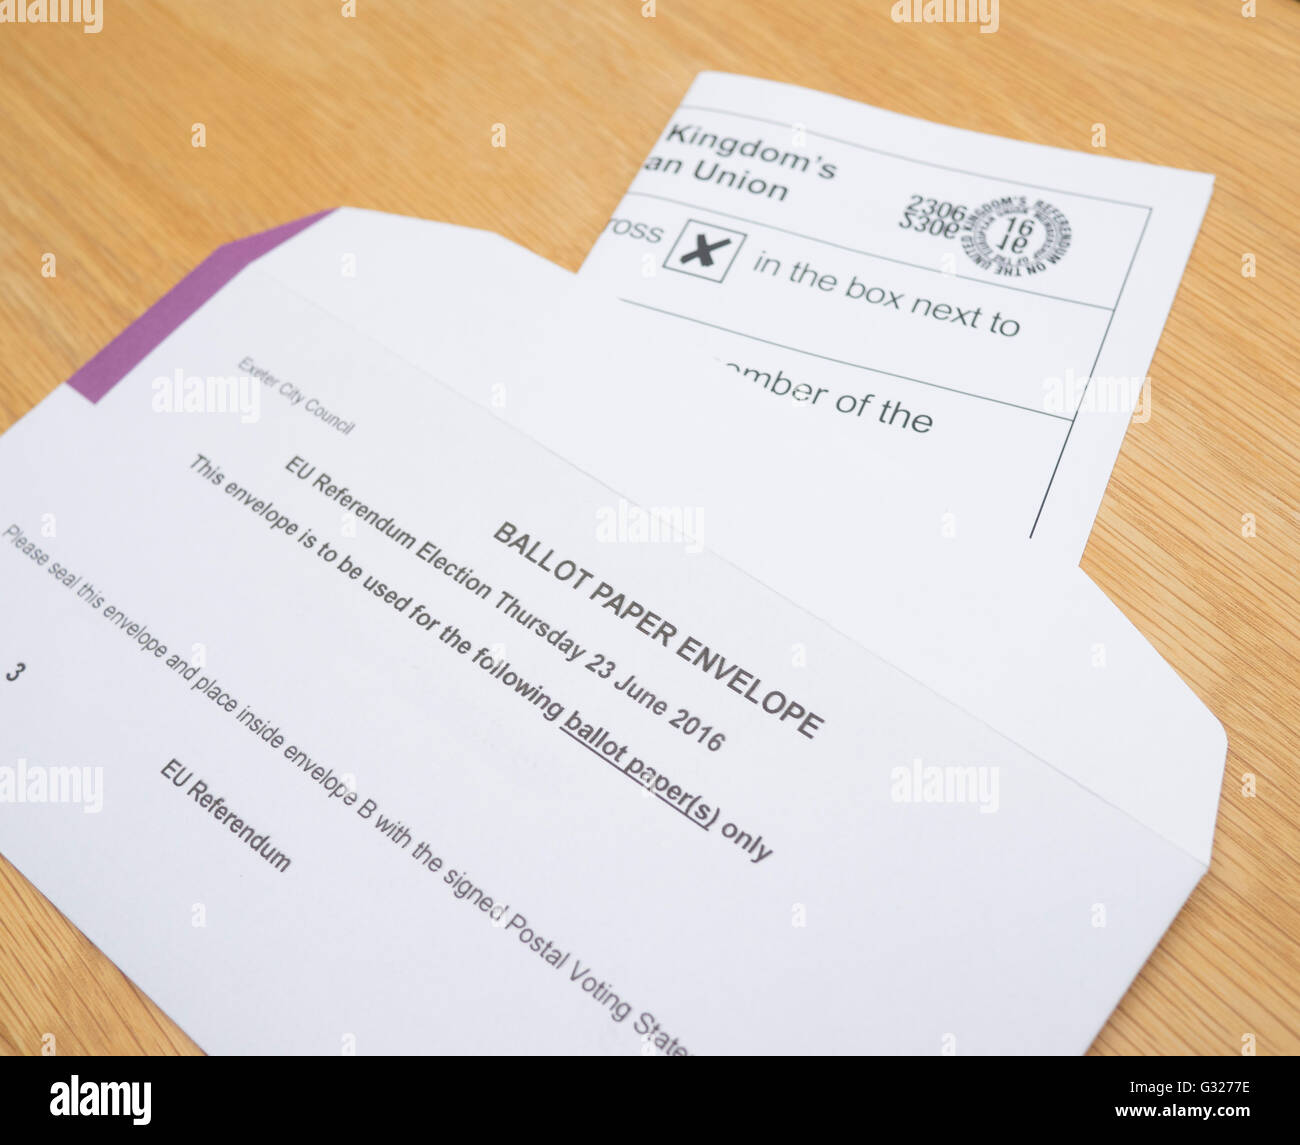 Exeter UK 7 June 2016 EU referendum voting by postal ballot in voting envelope - Stock Image